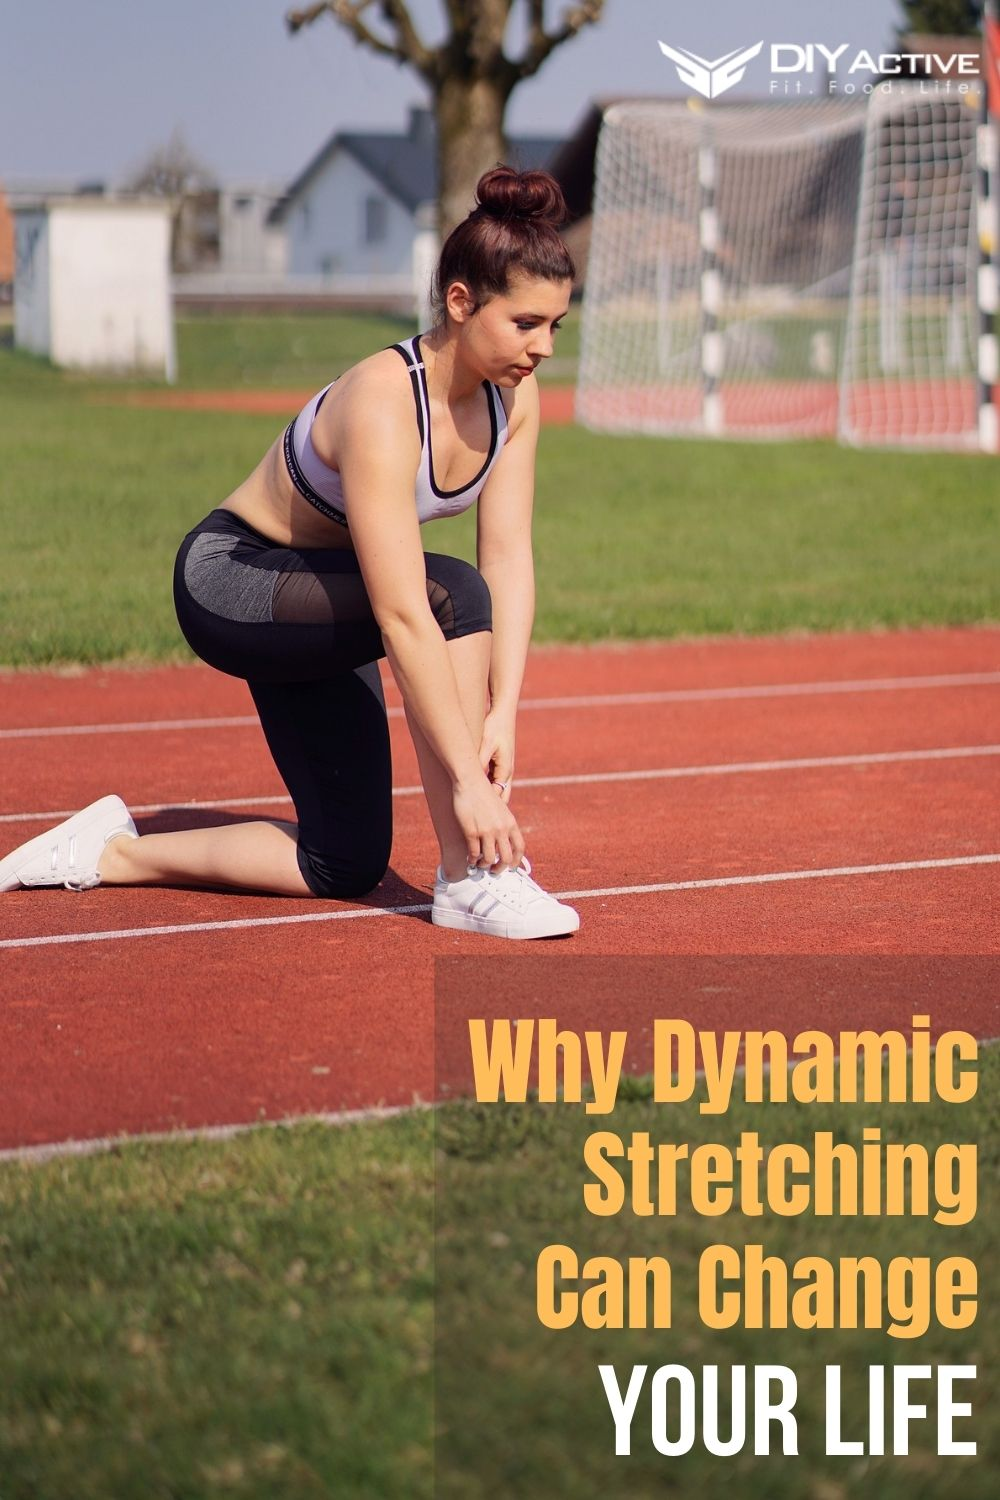 Why Dynamic Stretching Can Change Your Life